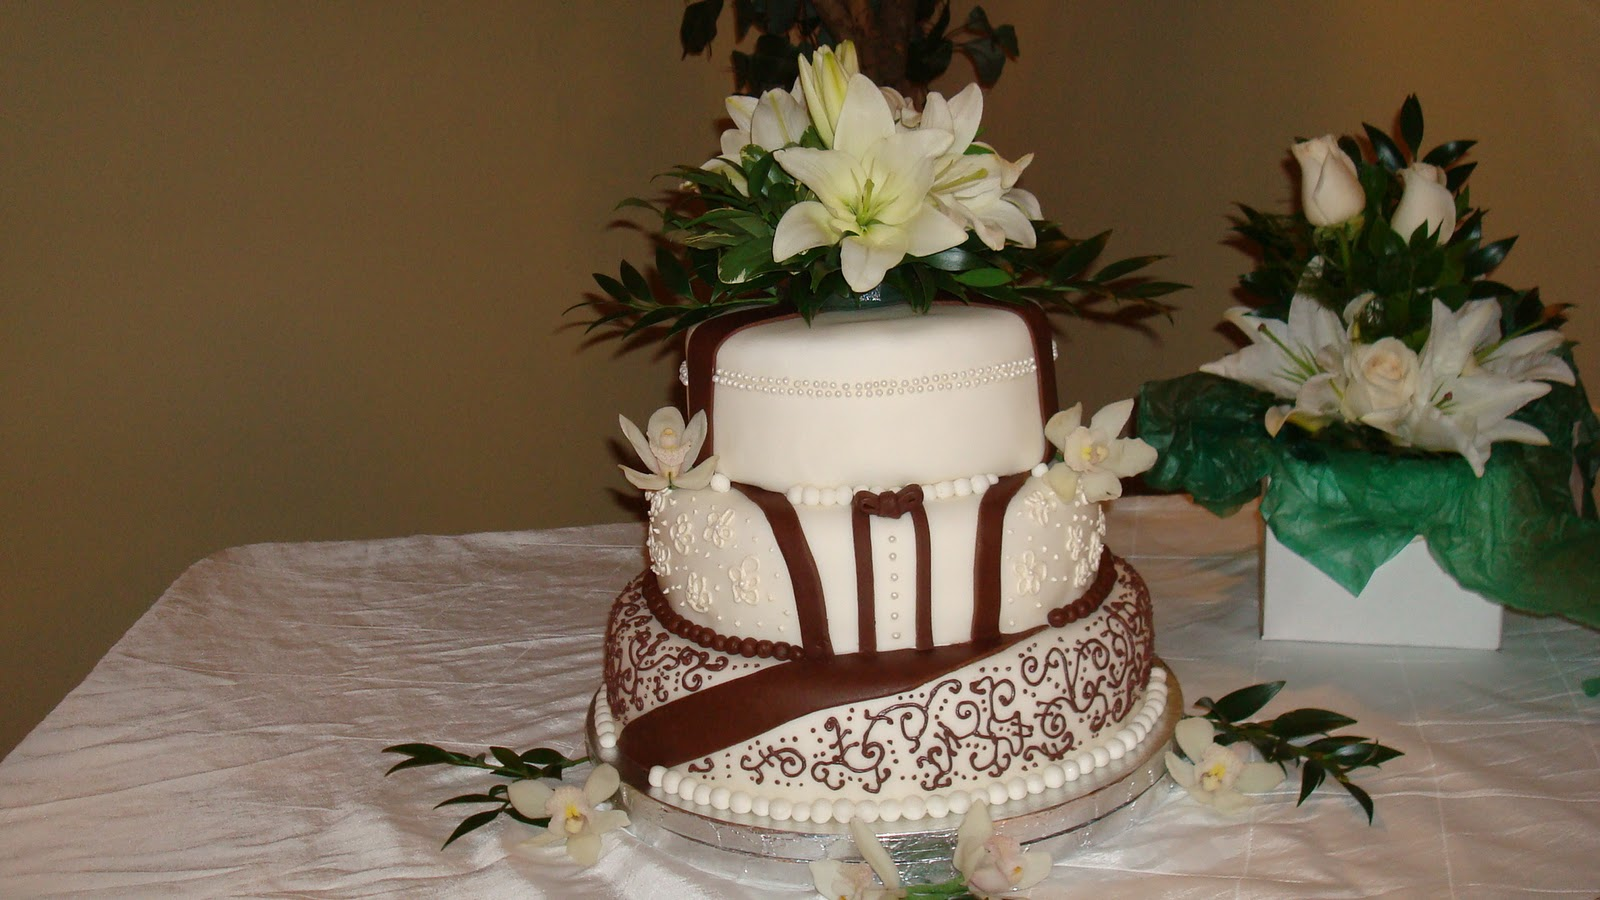 Wedding Cakes And Fabulously Delicious Creations Brown And White 3 Tier Wedding Cake